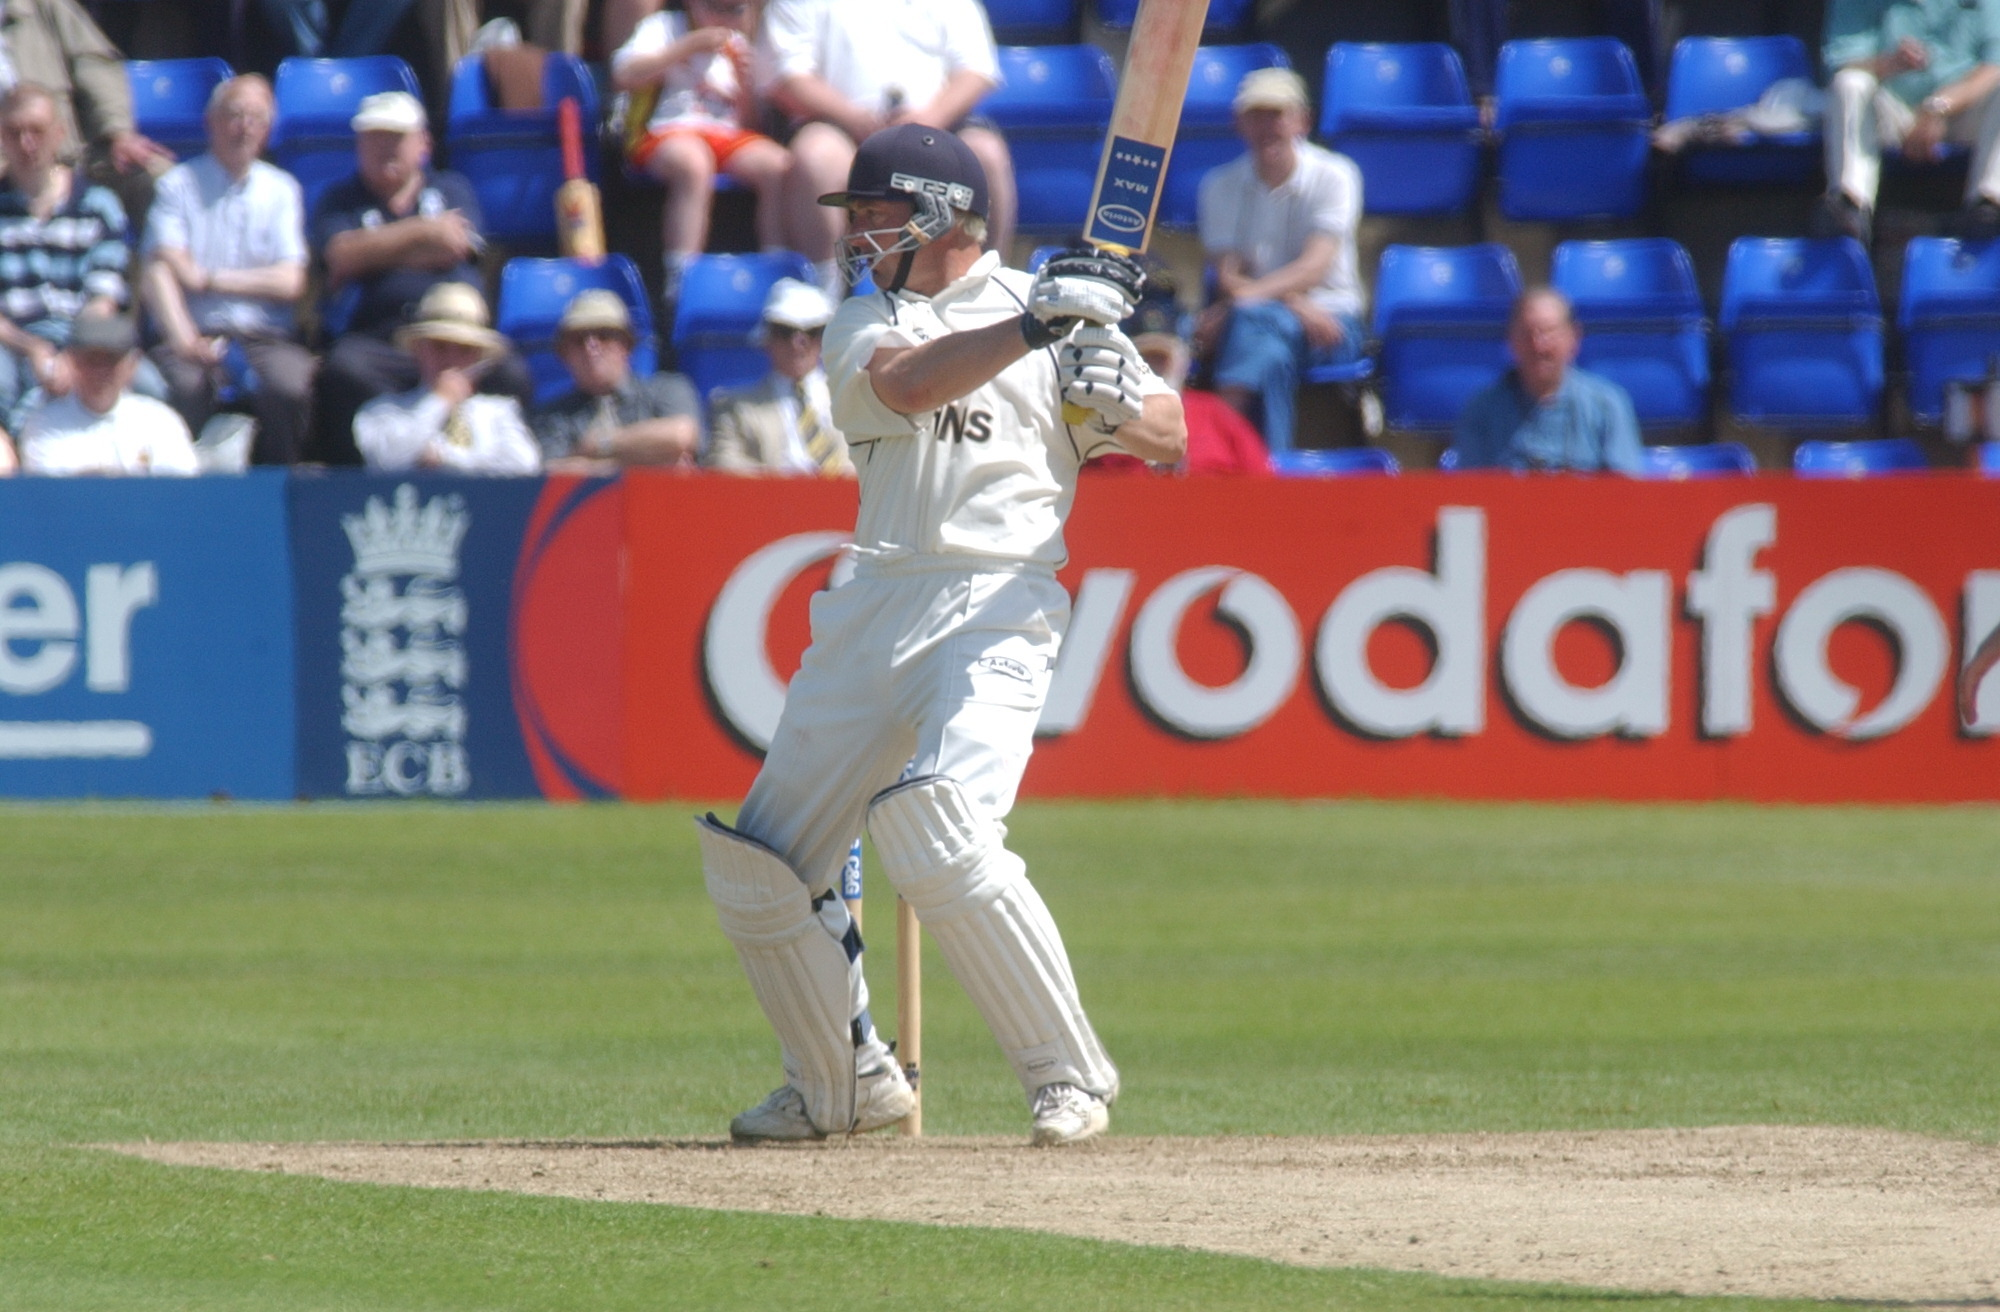 GLAMORGAN GREAT: Matthew Maynard